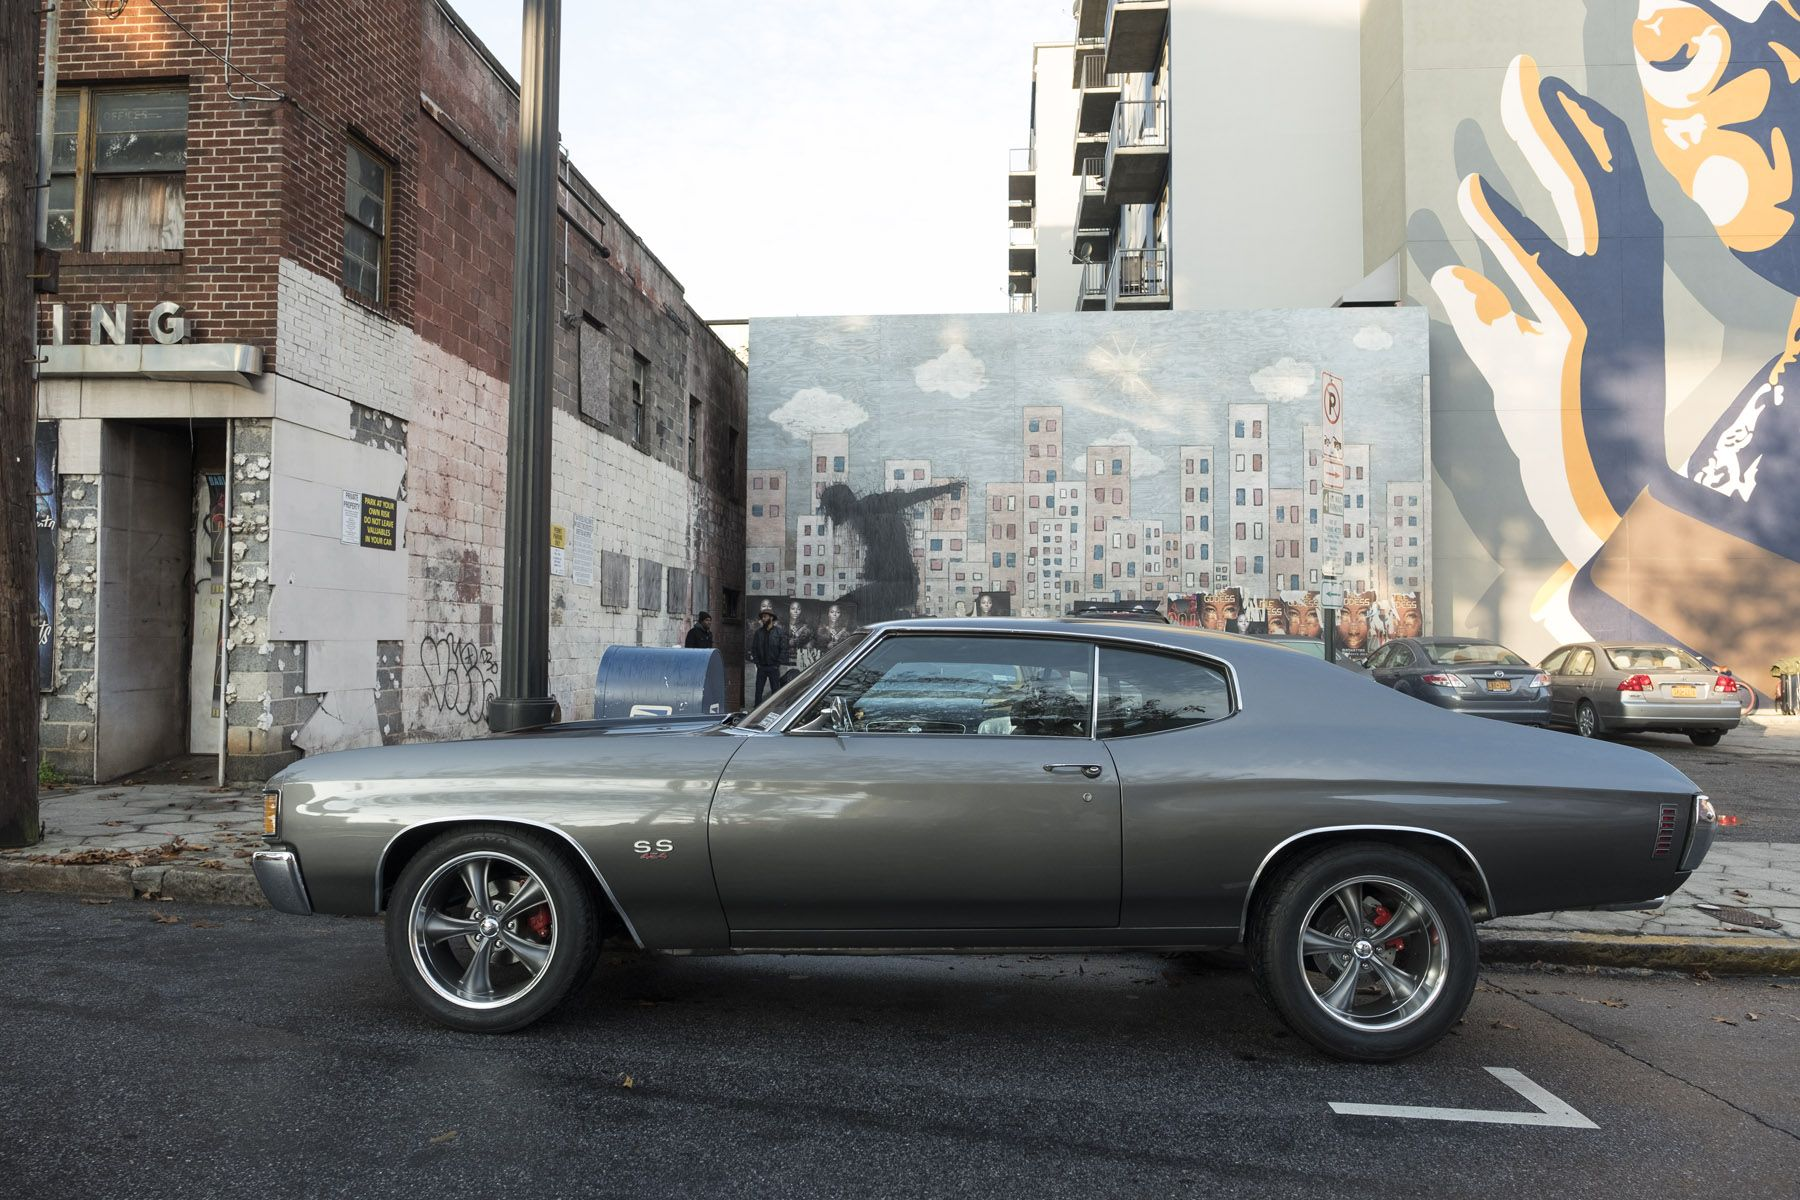 How 'Shaft' Brought the 1971 Chevy Chevelle SS Into 2019